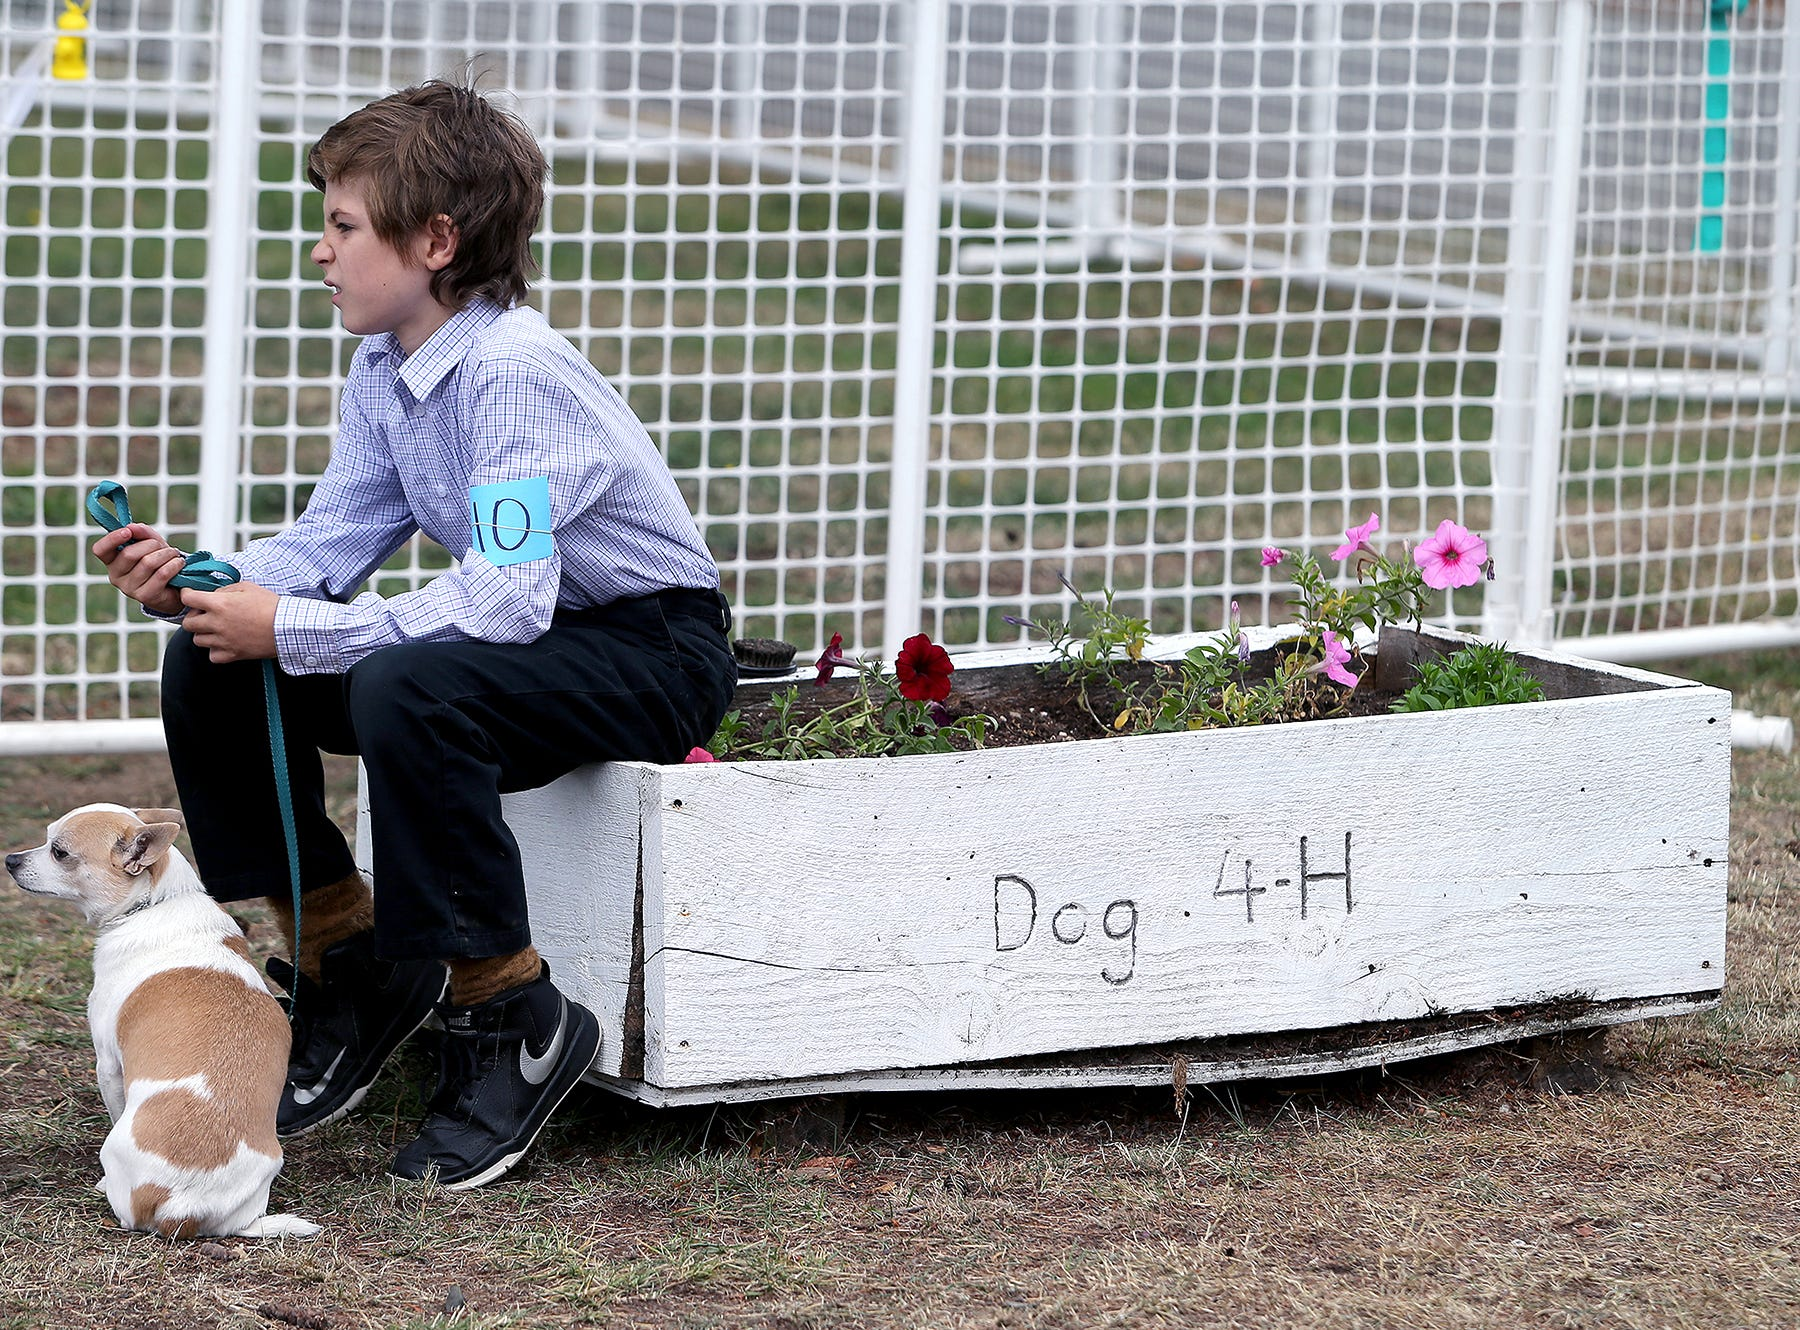 Michael Tabor, 10, of Bremerton waits with his dog Dexter for his turn in the beginner obedience class at the Kitsap County Fair & Stampede on Thursday, August 23, 2018, at the Kitsap County Fairgrounds.The fair goes from 10 a.m. until 10 p.m..It was his first time showing at the fair and had already picked up one blue ribbon.